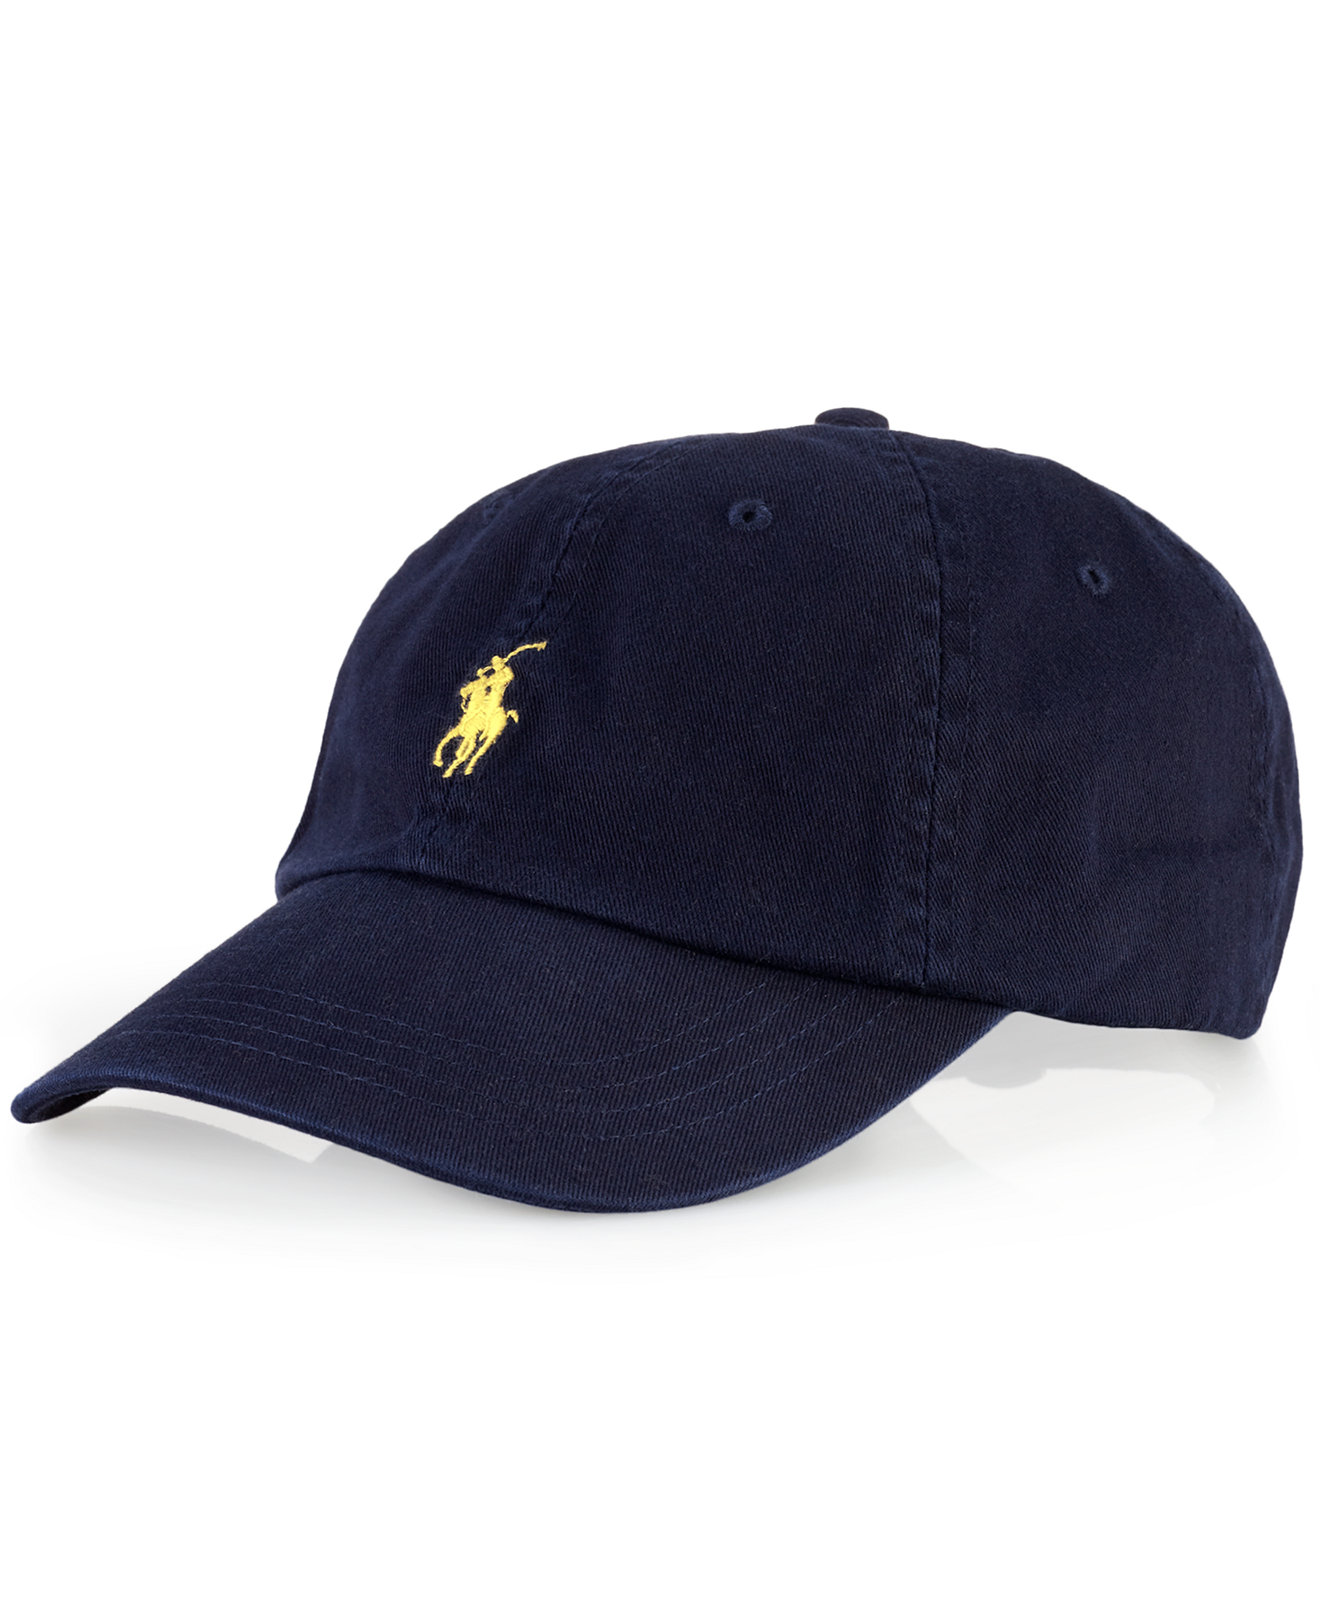 ralph lauren polo hats for women images. Black Bedroom Furniture Sets. Home Design Ideas